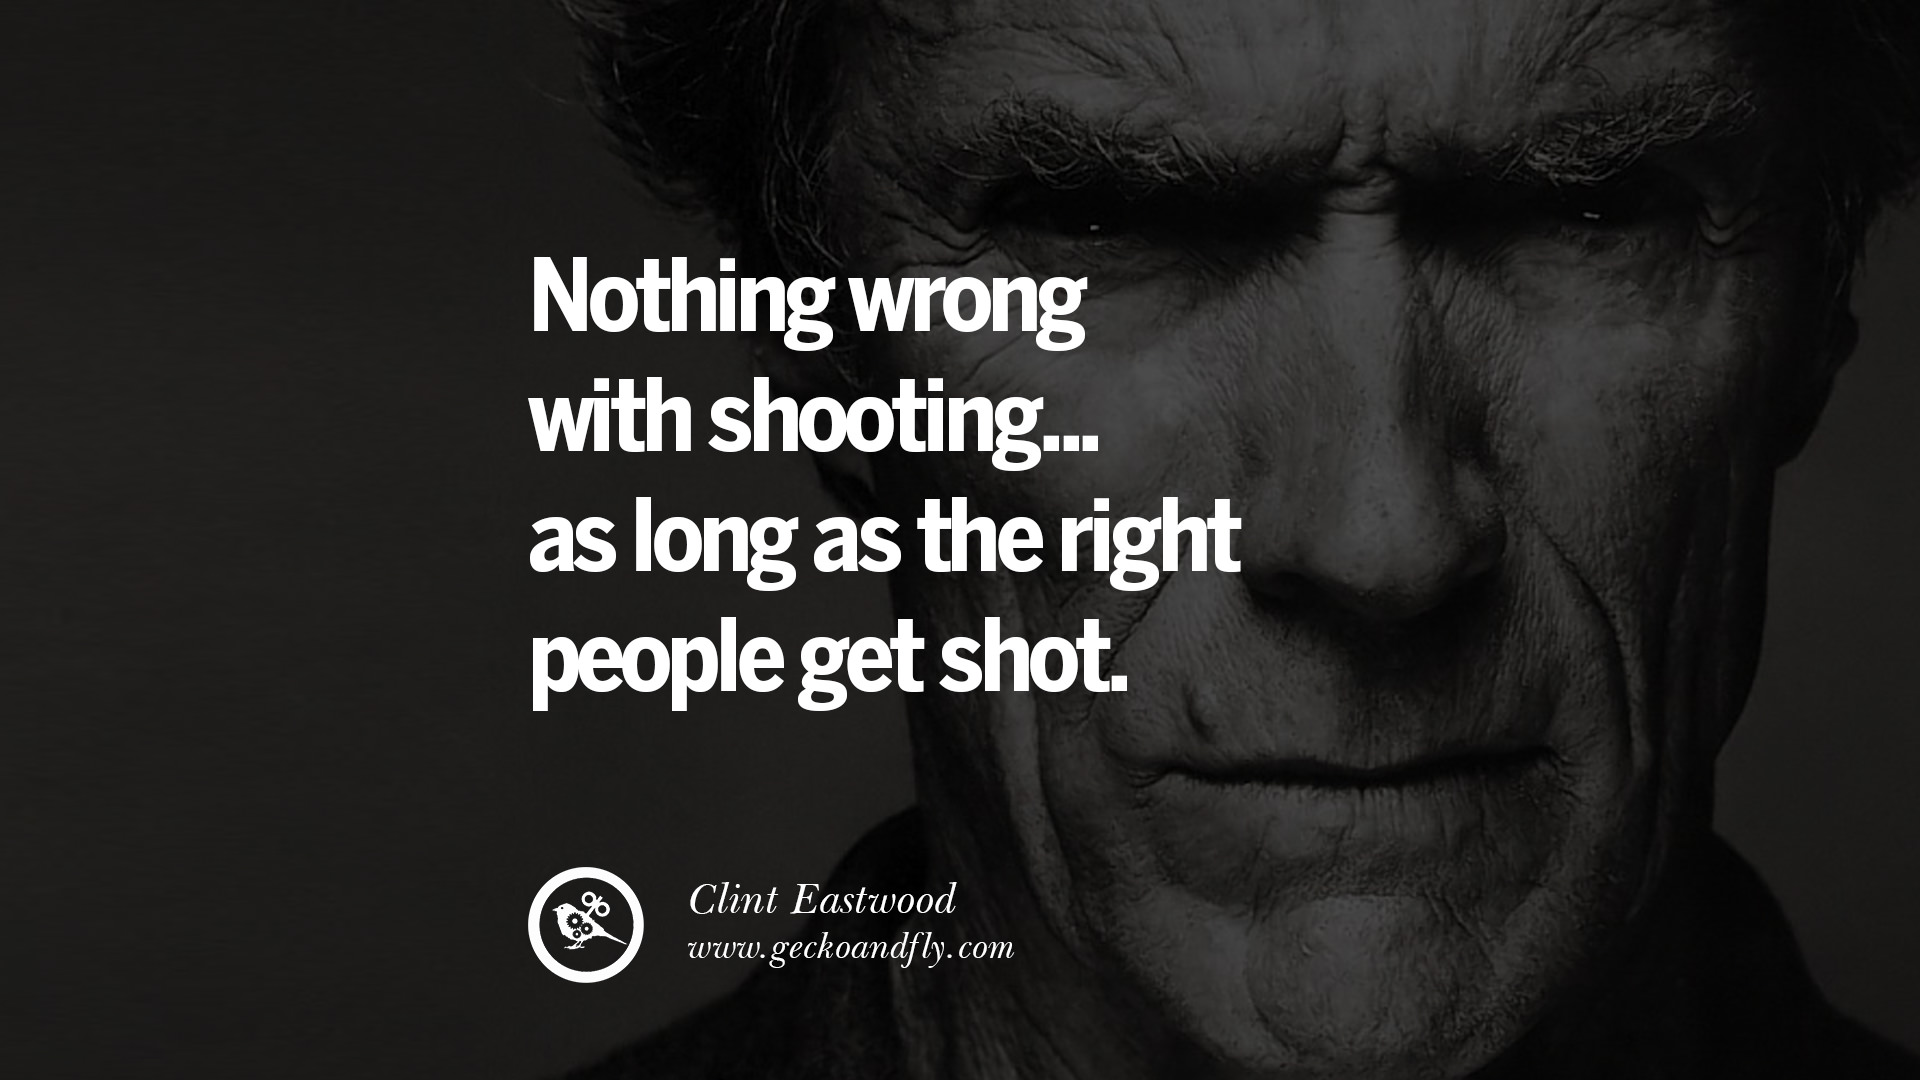 Shooting Quotes Shooting Quotes Awesome Nothing Wrong With Shootingas Long As The